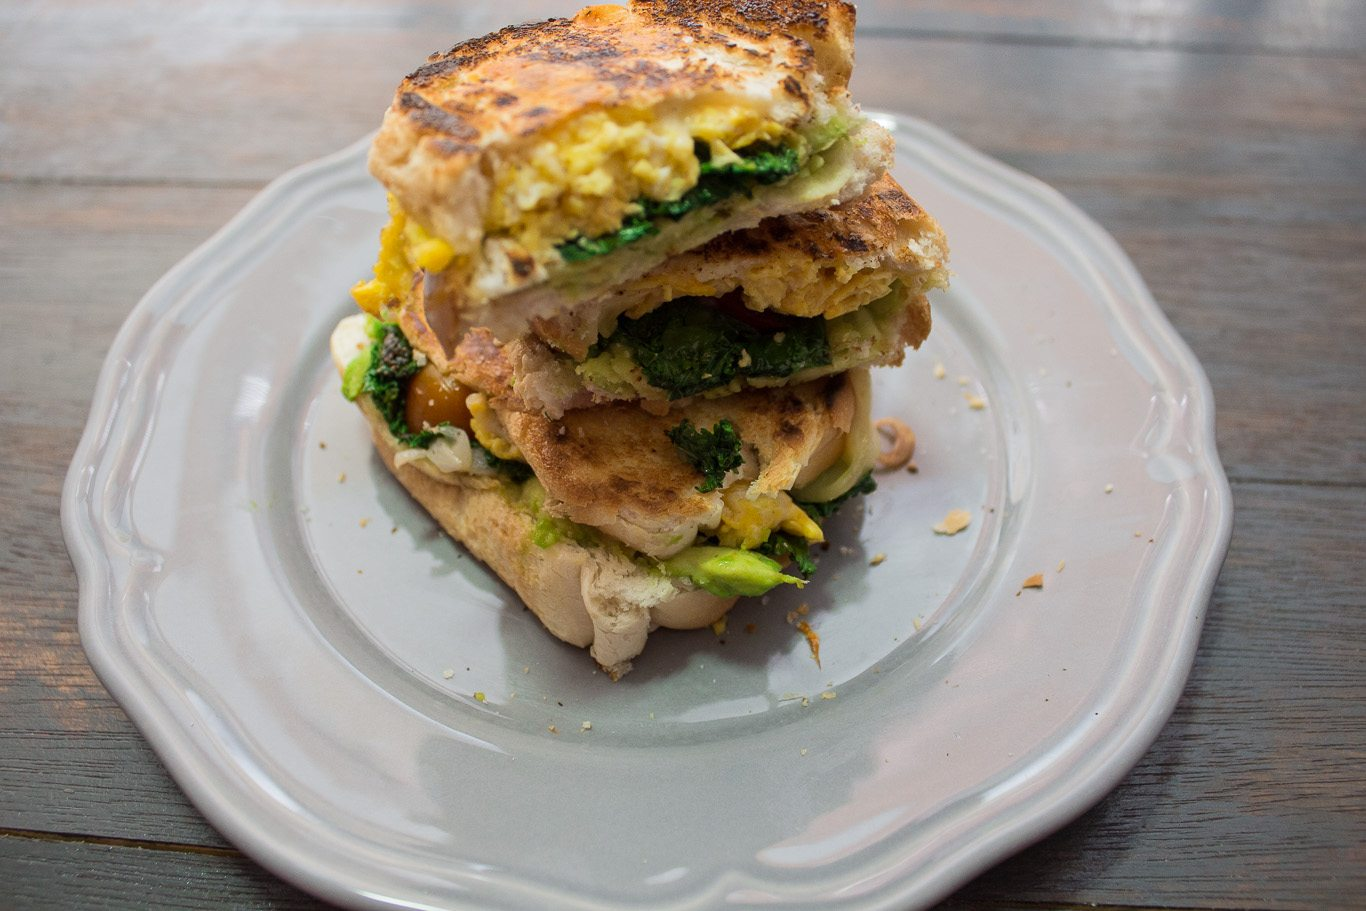 This Avocado, egg and kale Panini